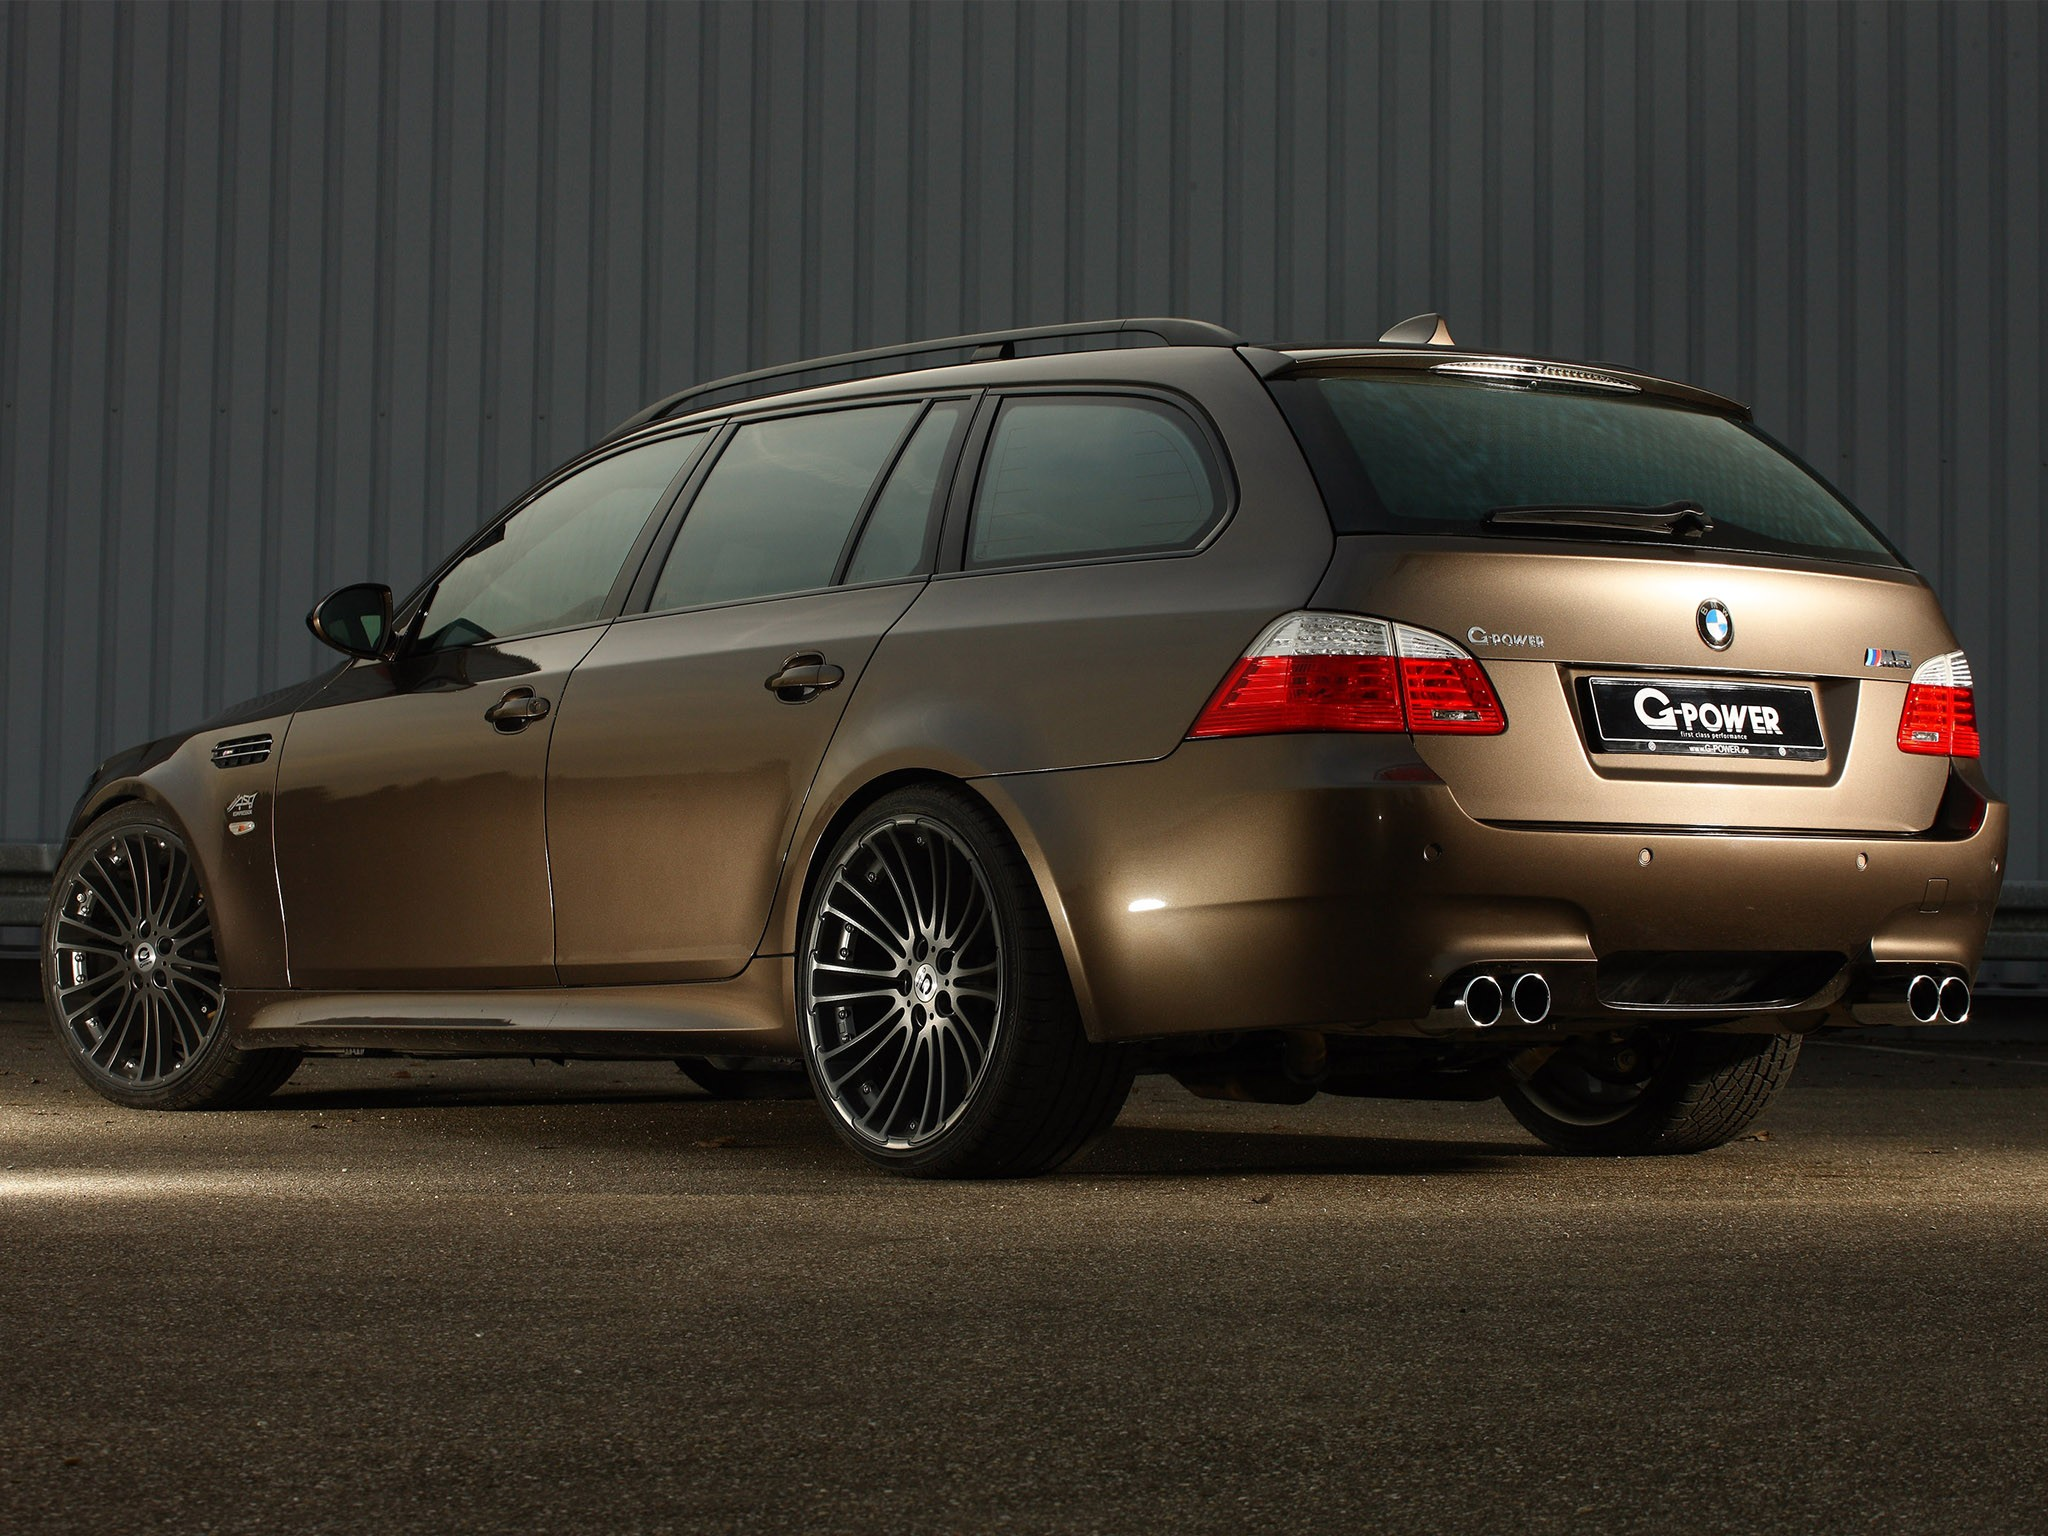 2011 G-power - Bmw M5 Hurricane RS Touring